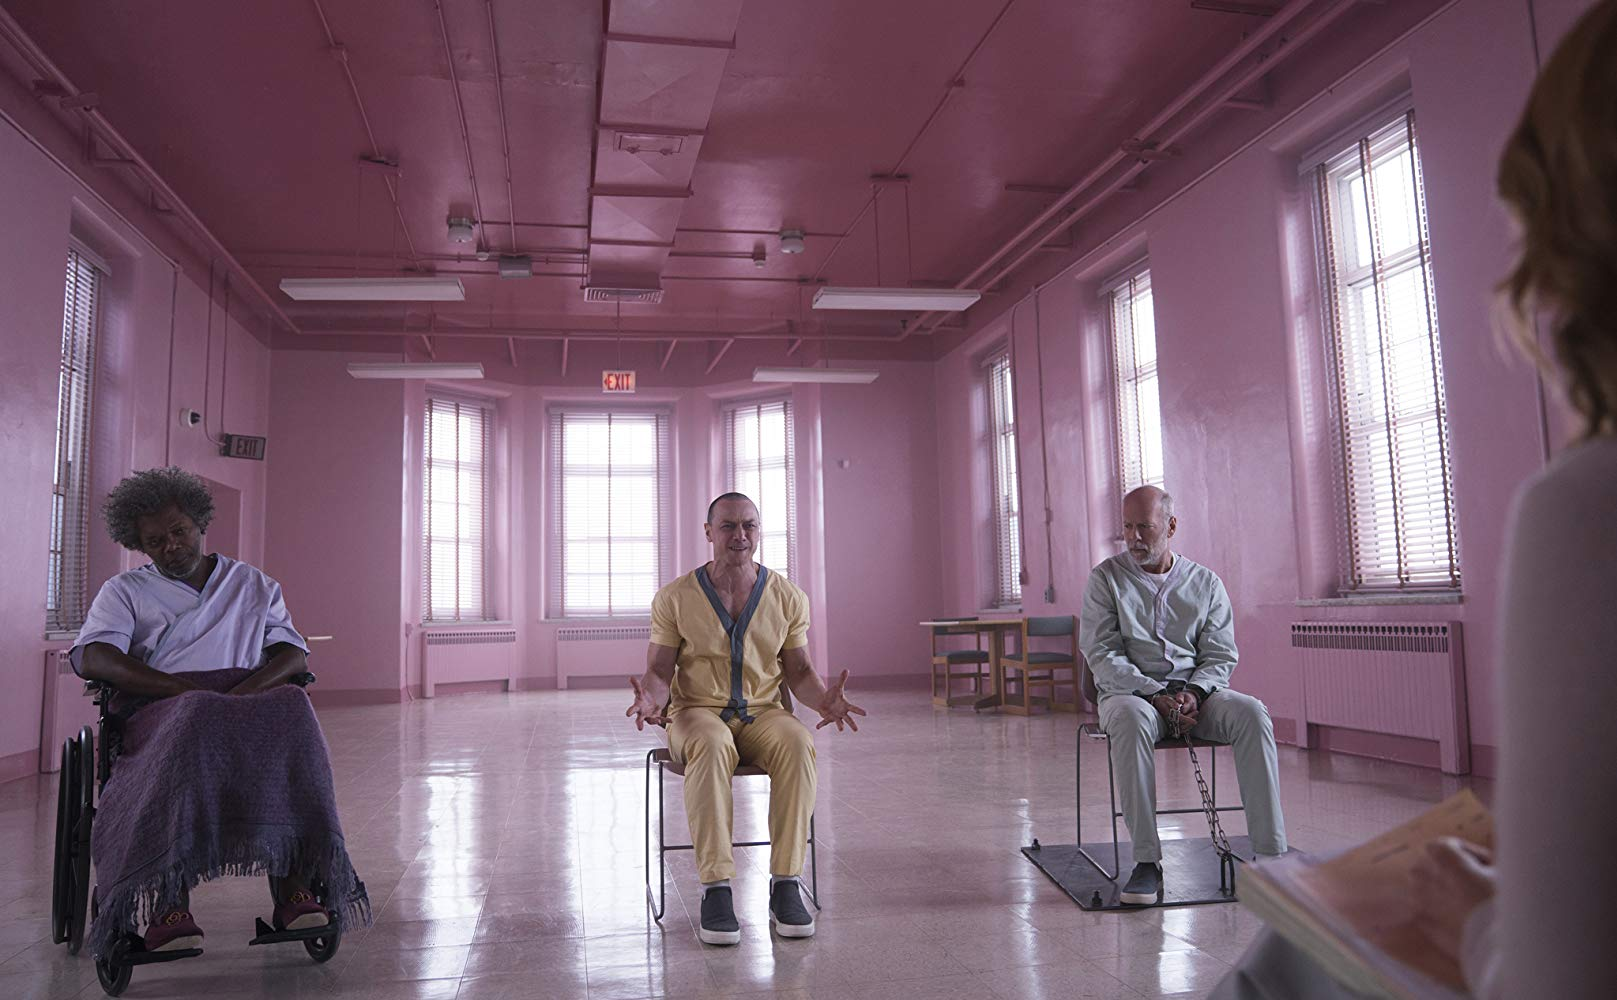 [News] GLASS Available on Digital April 2 and 4K Ultra HD, Blu-ray, DVD and On Demand April 16